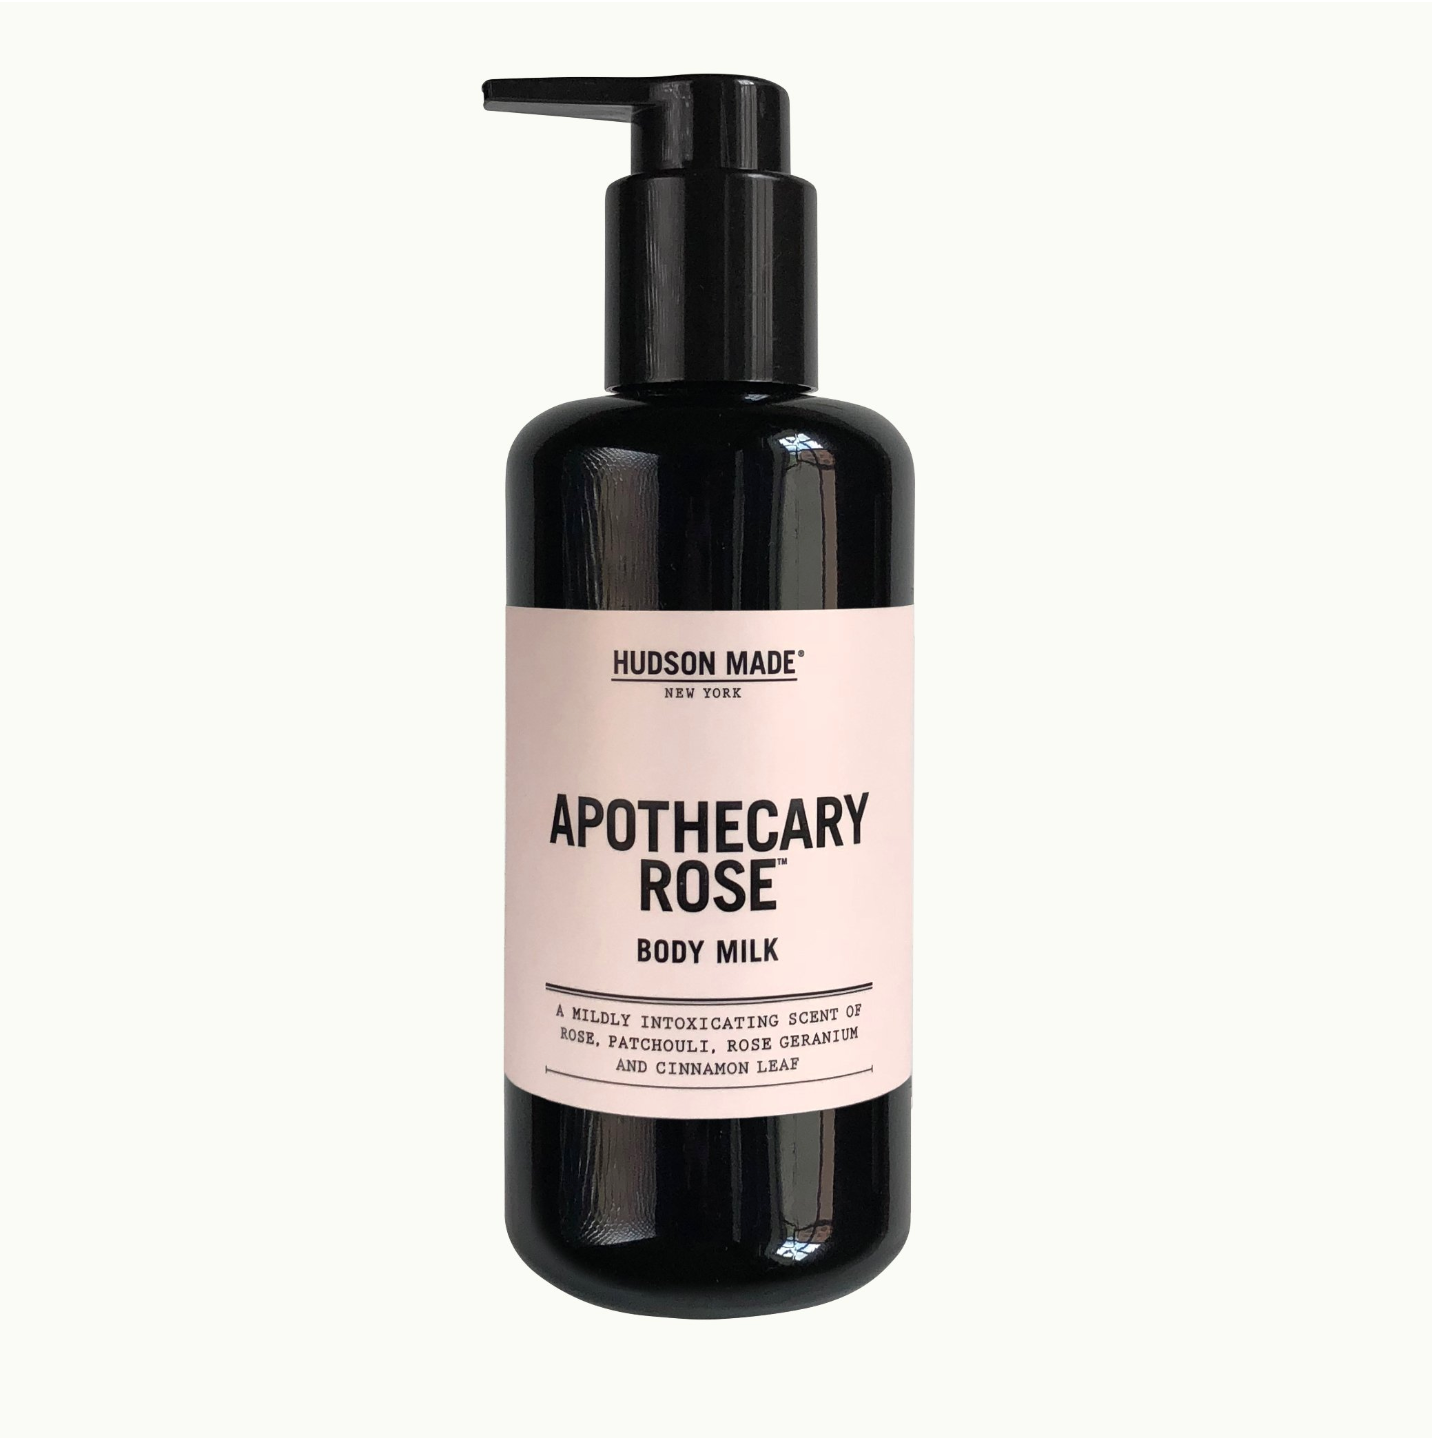 Apothecary rose body milk by hudson made